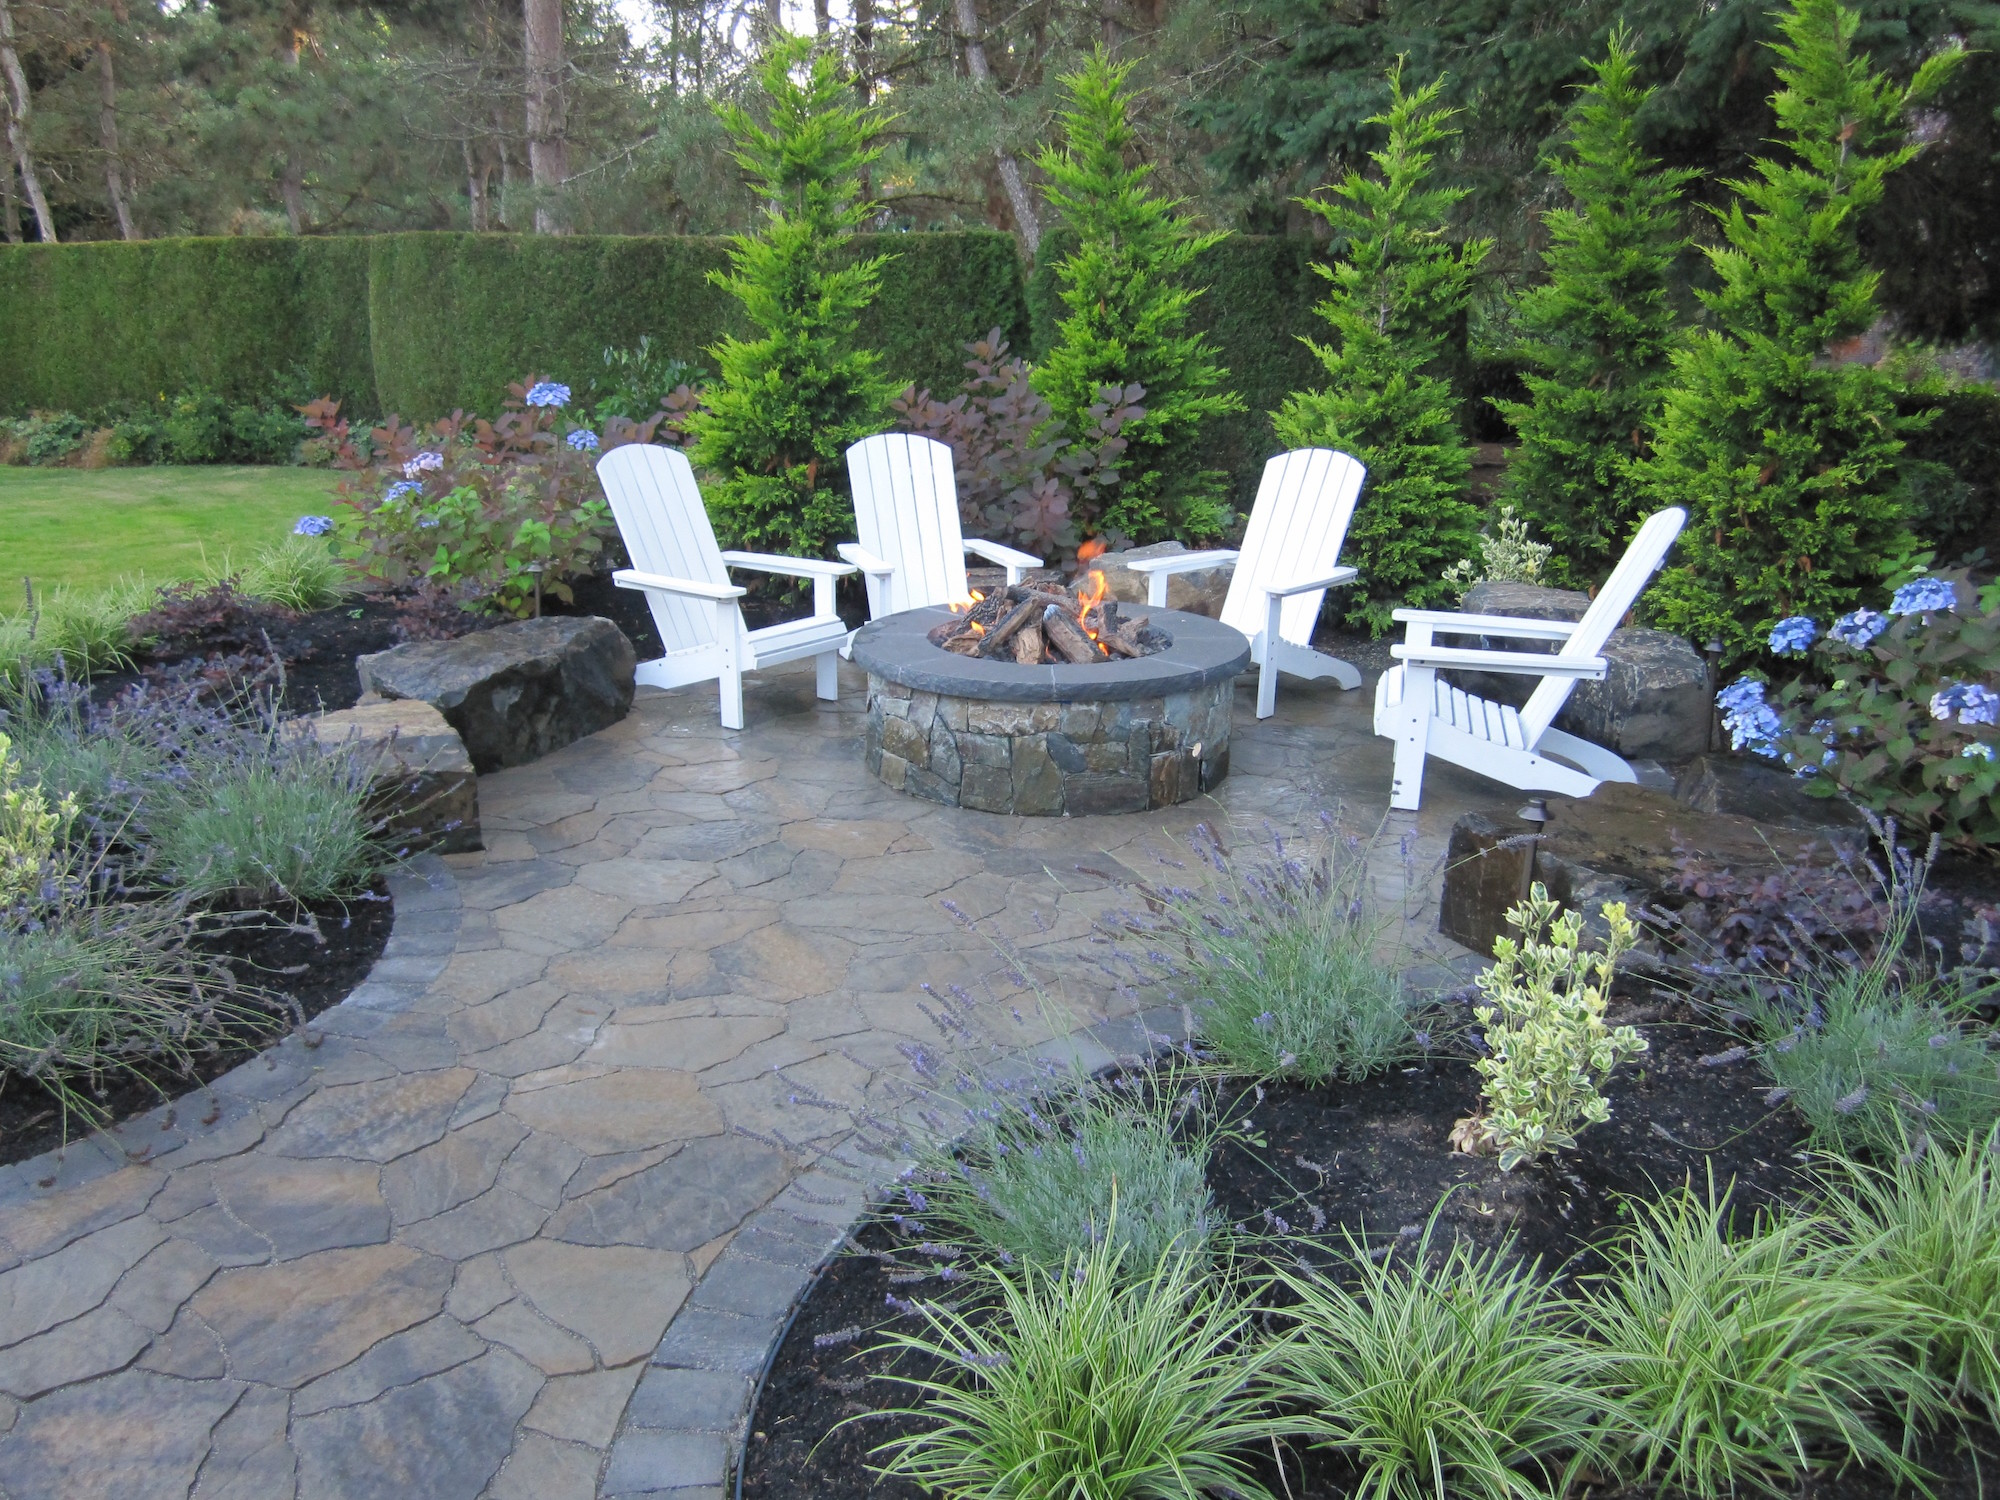 15 Fire Pit Ideas To Keep You Cozy Year Round on Garden Ideas With Fire Pit id=19801